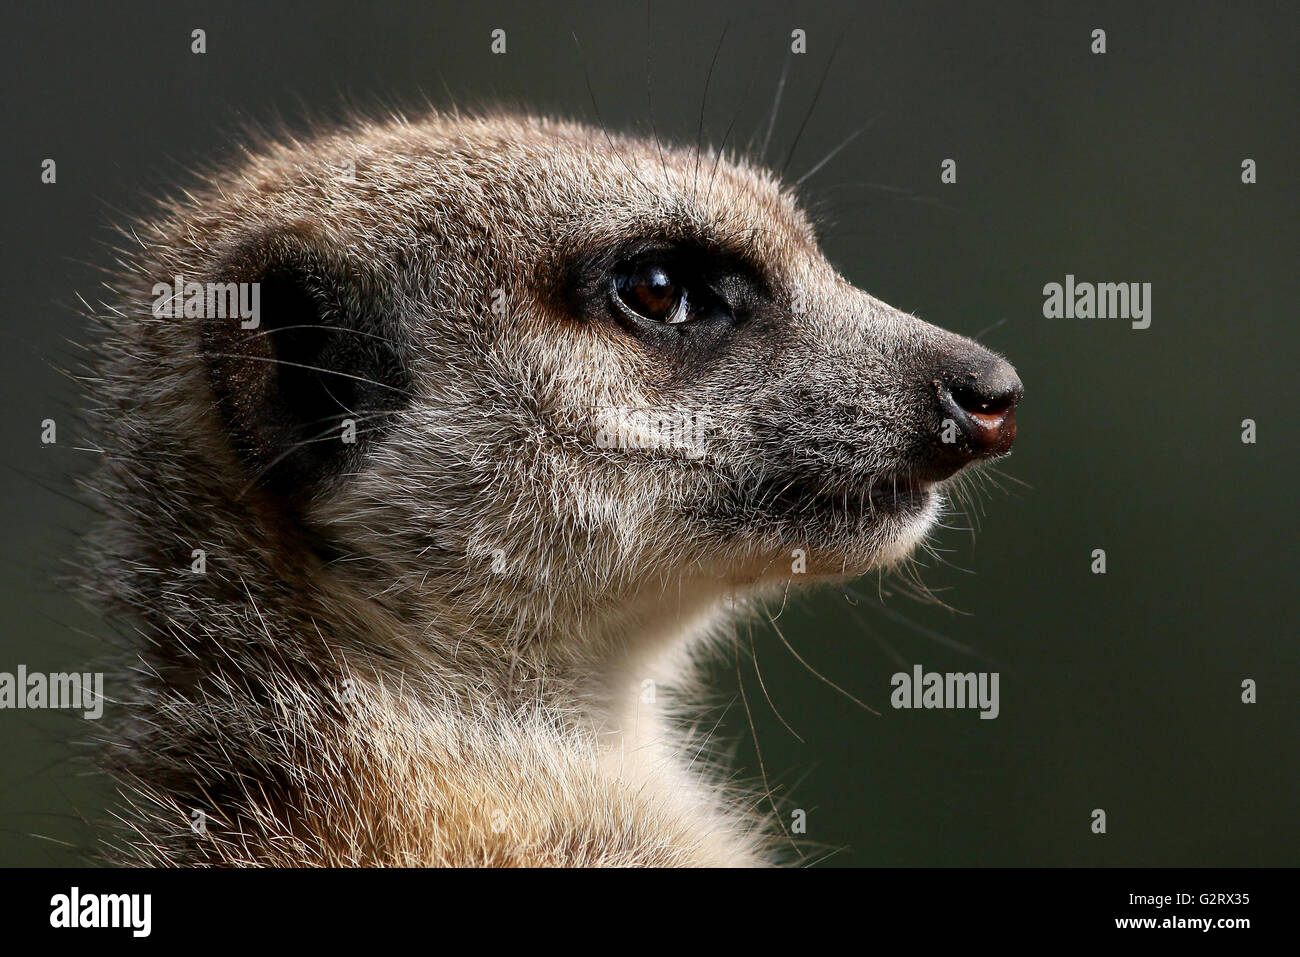 Close-up of the head of an alert South African Meerkat (Suricata suricatta) - Stock Image